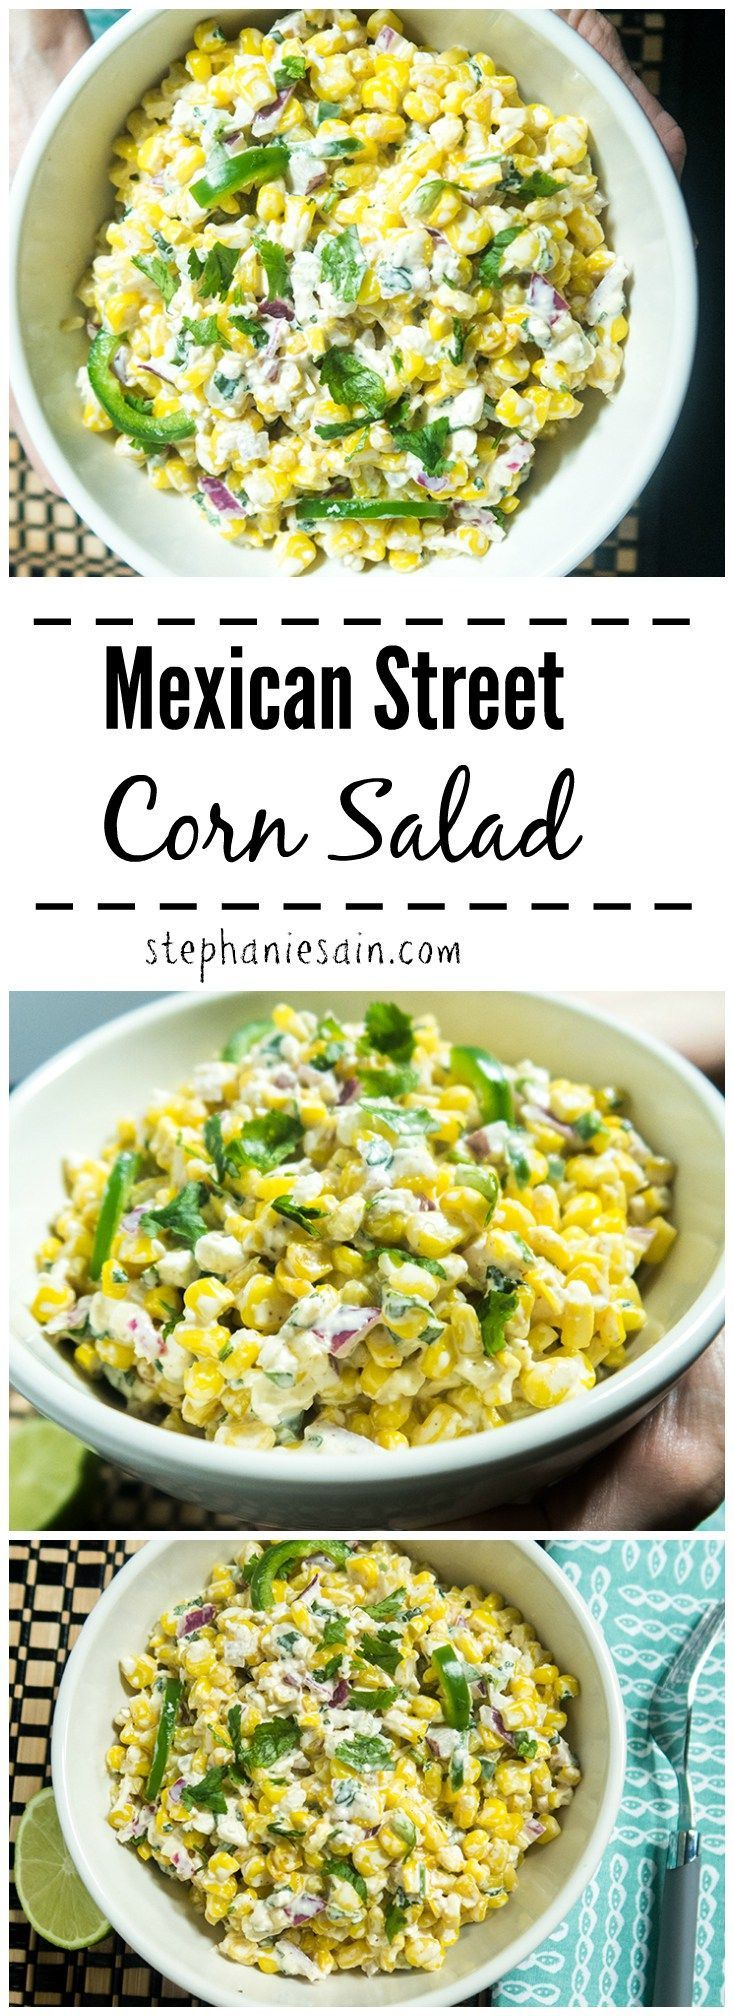 Mexican Street Corn Salad is a tasty, easy to prepare side. Could also work great as an appetizer with chips or cracker. Gluten Free & Vegetarian.